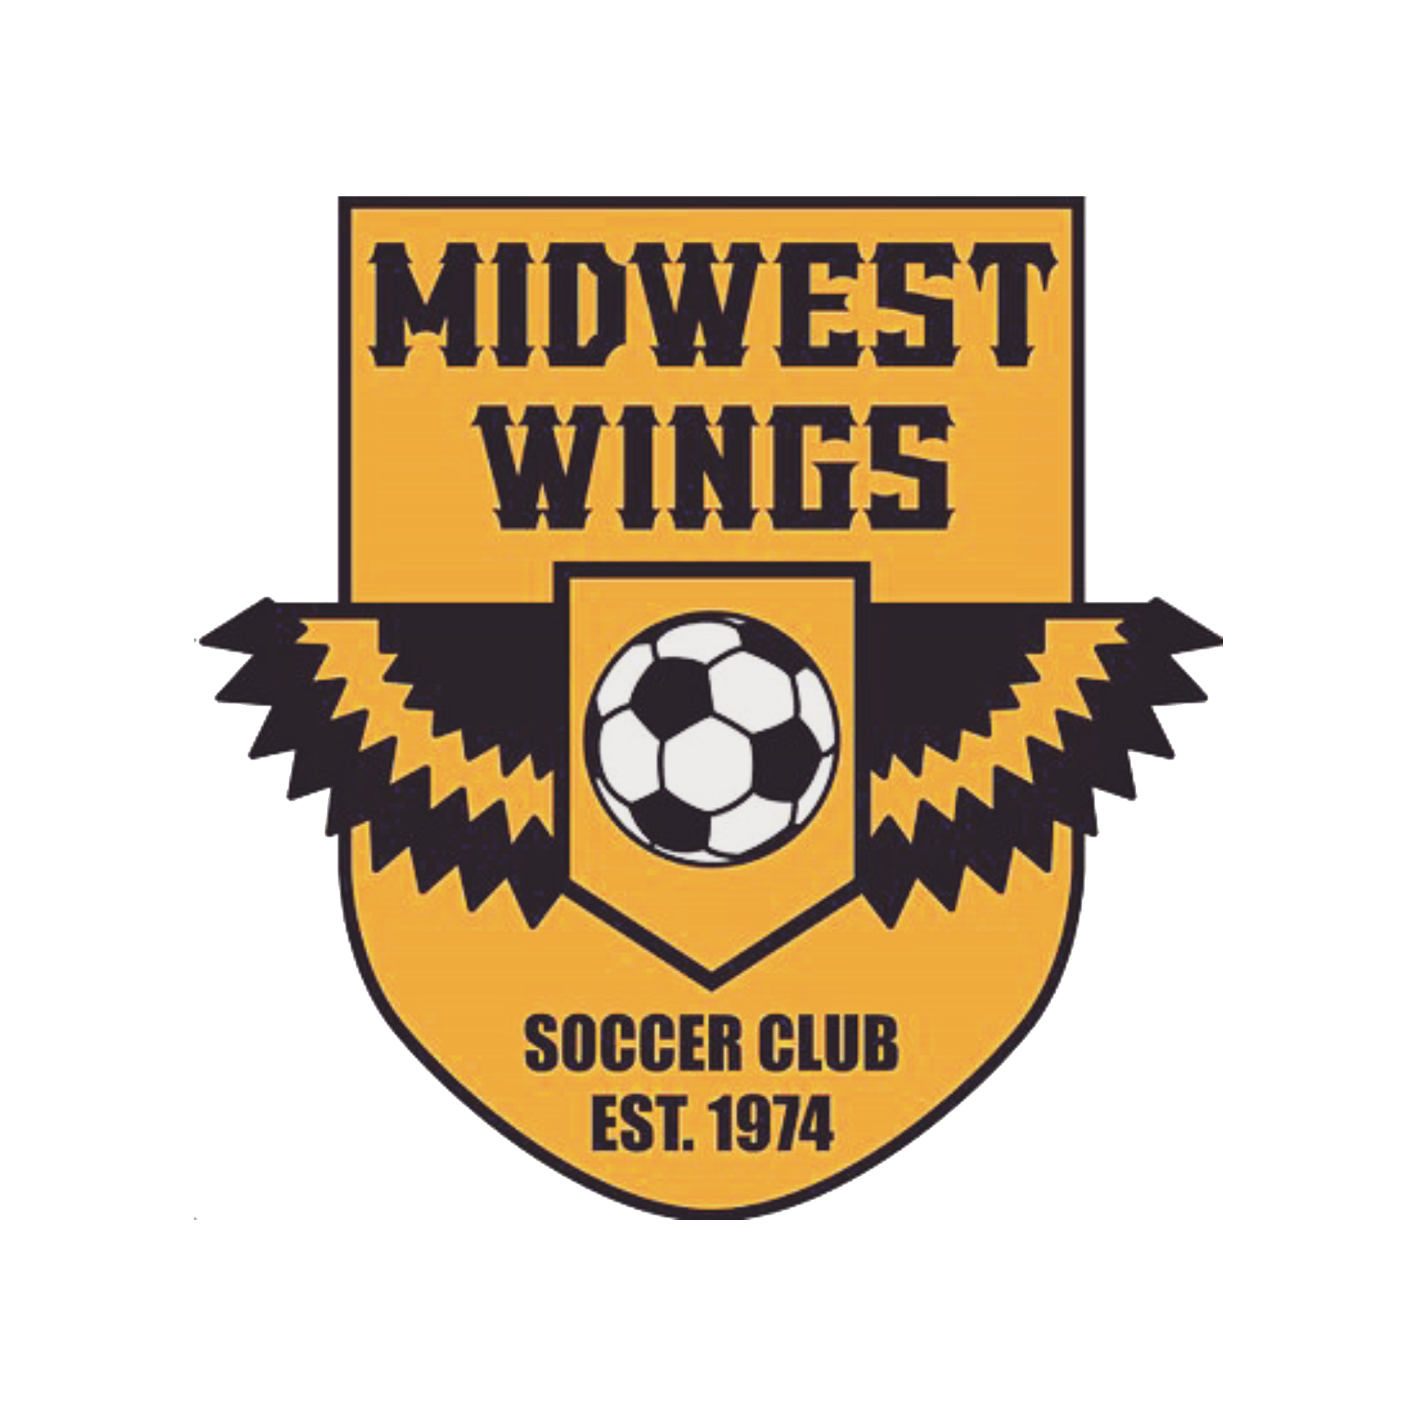 Midwest Wings logo